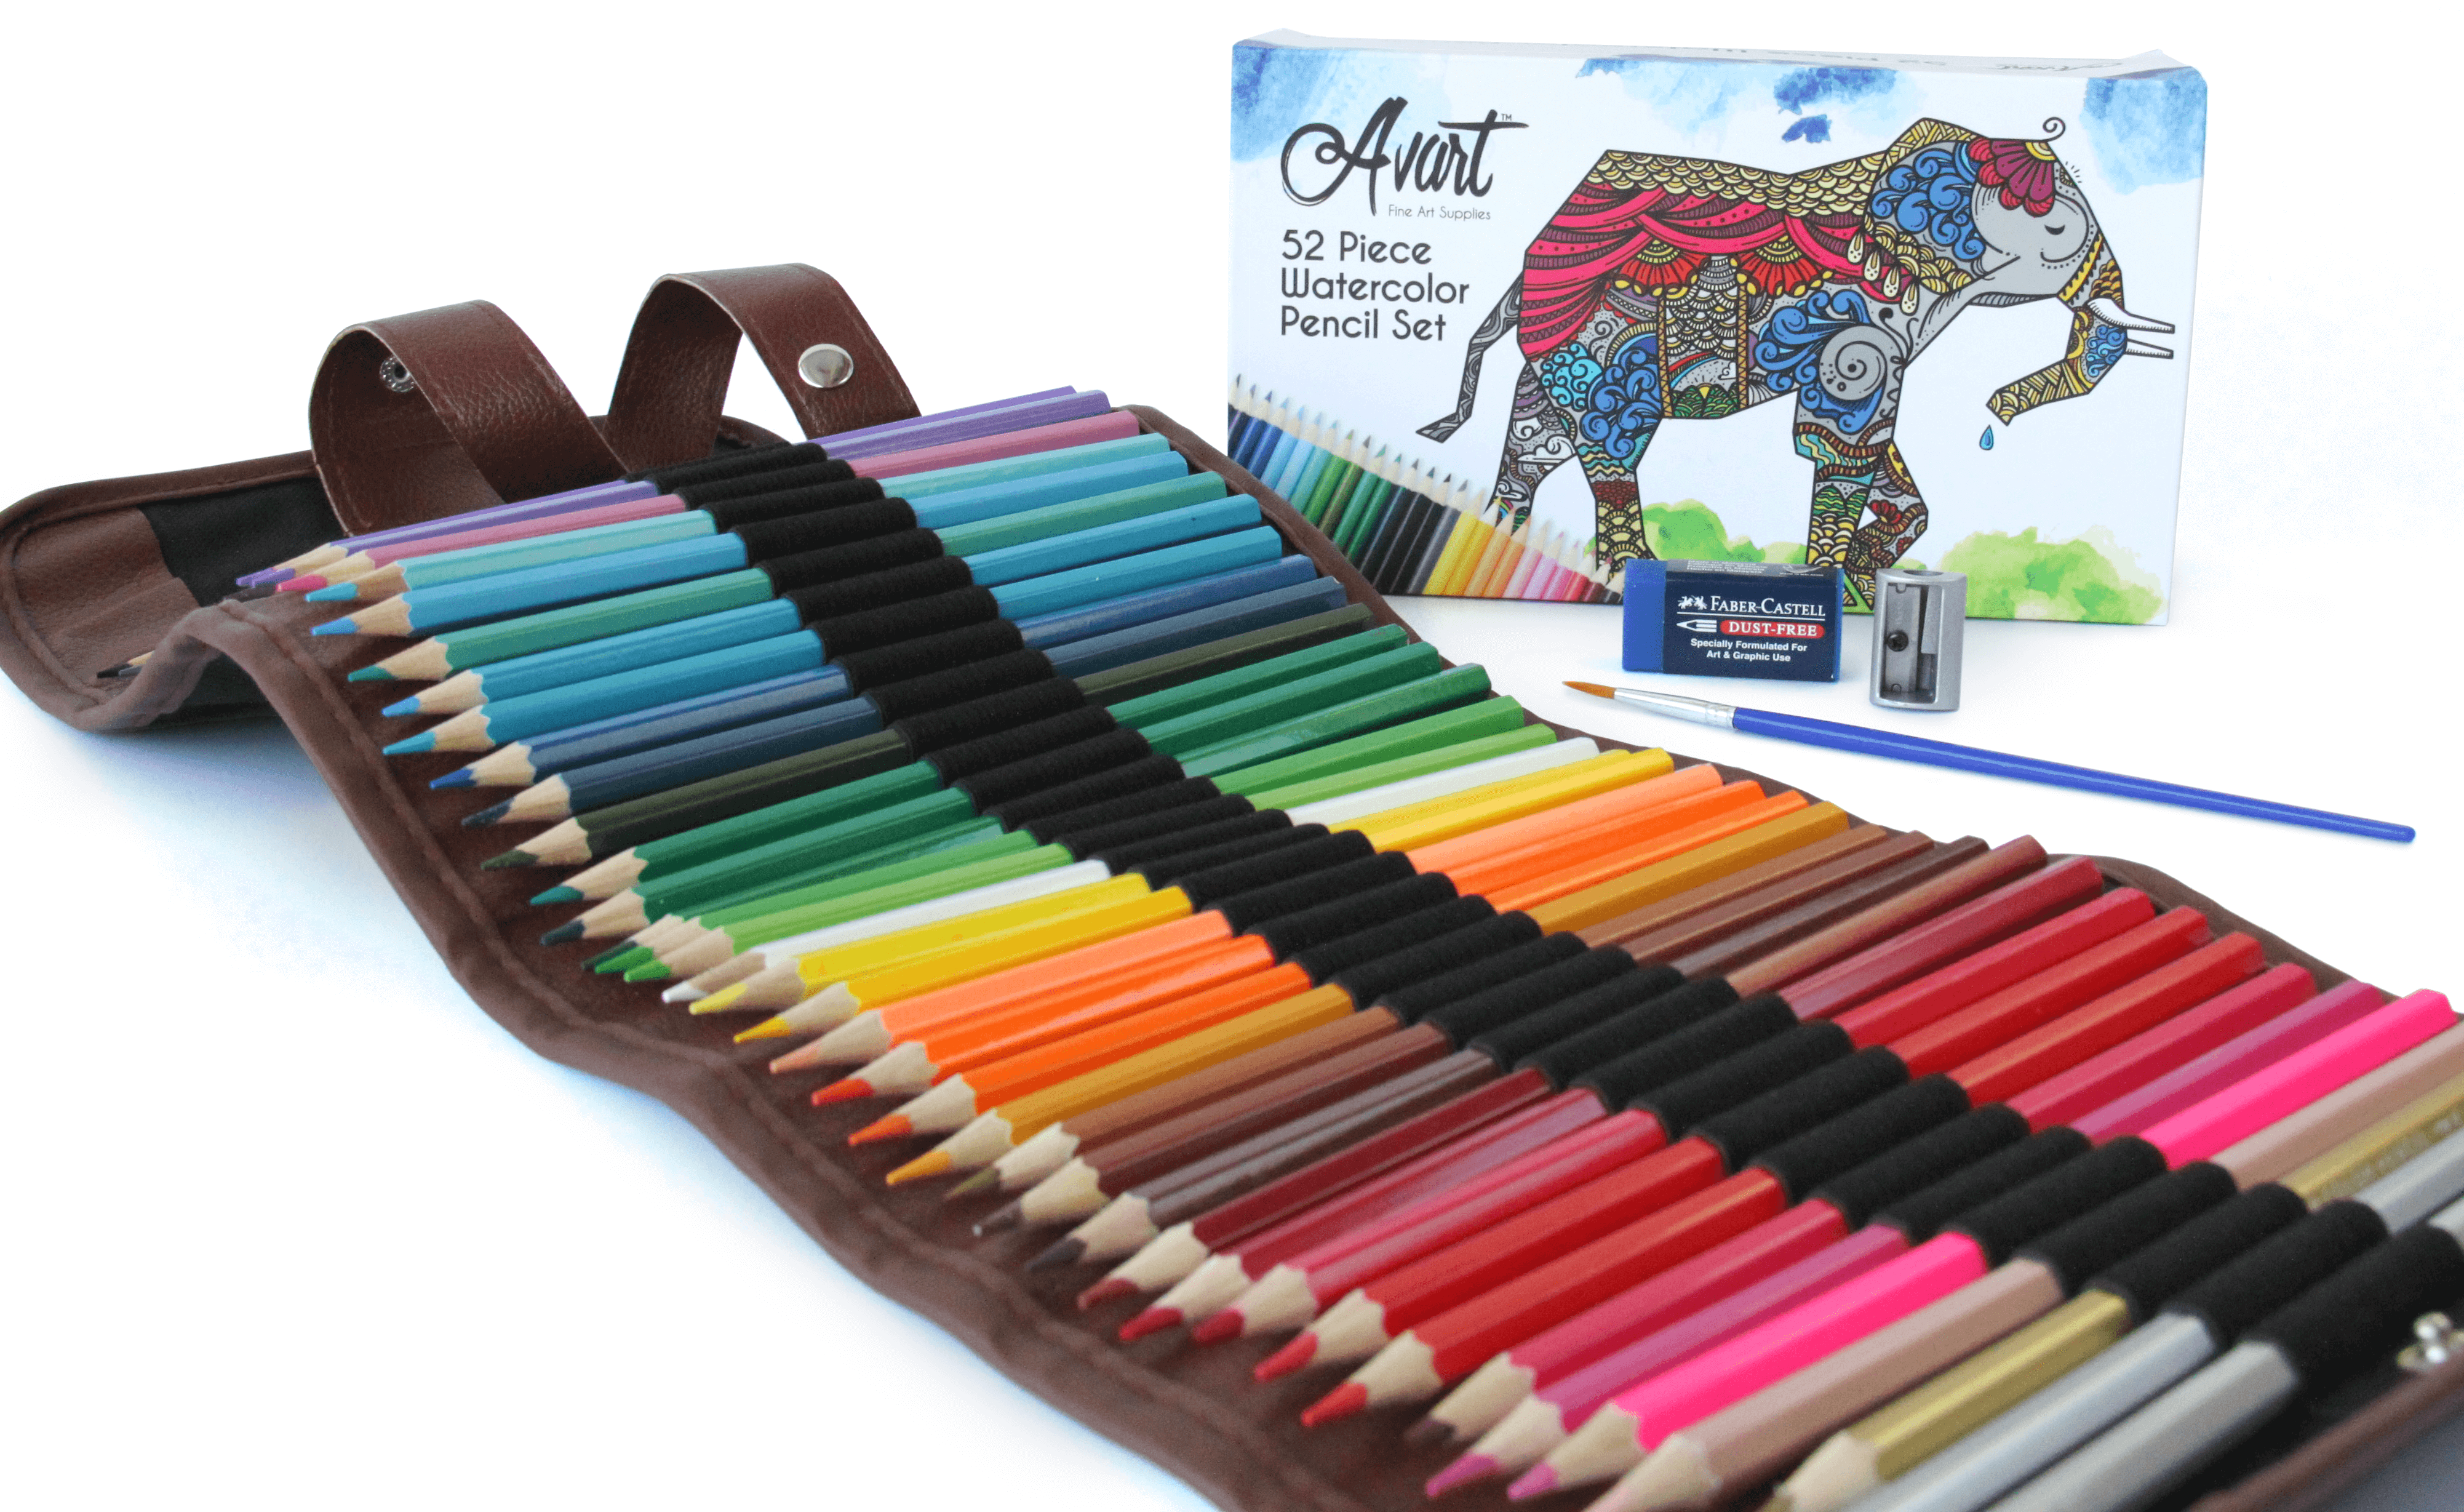 Avart 52 piece watercolor pencil set